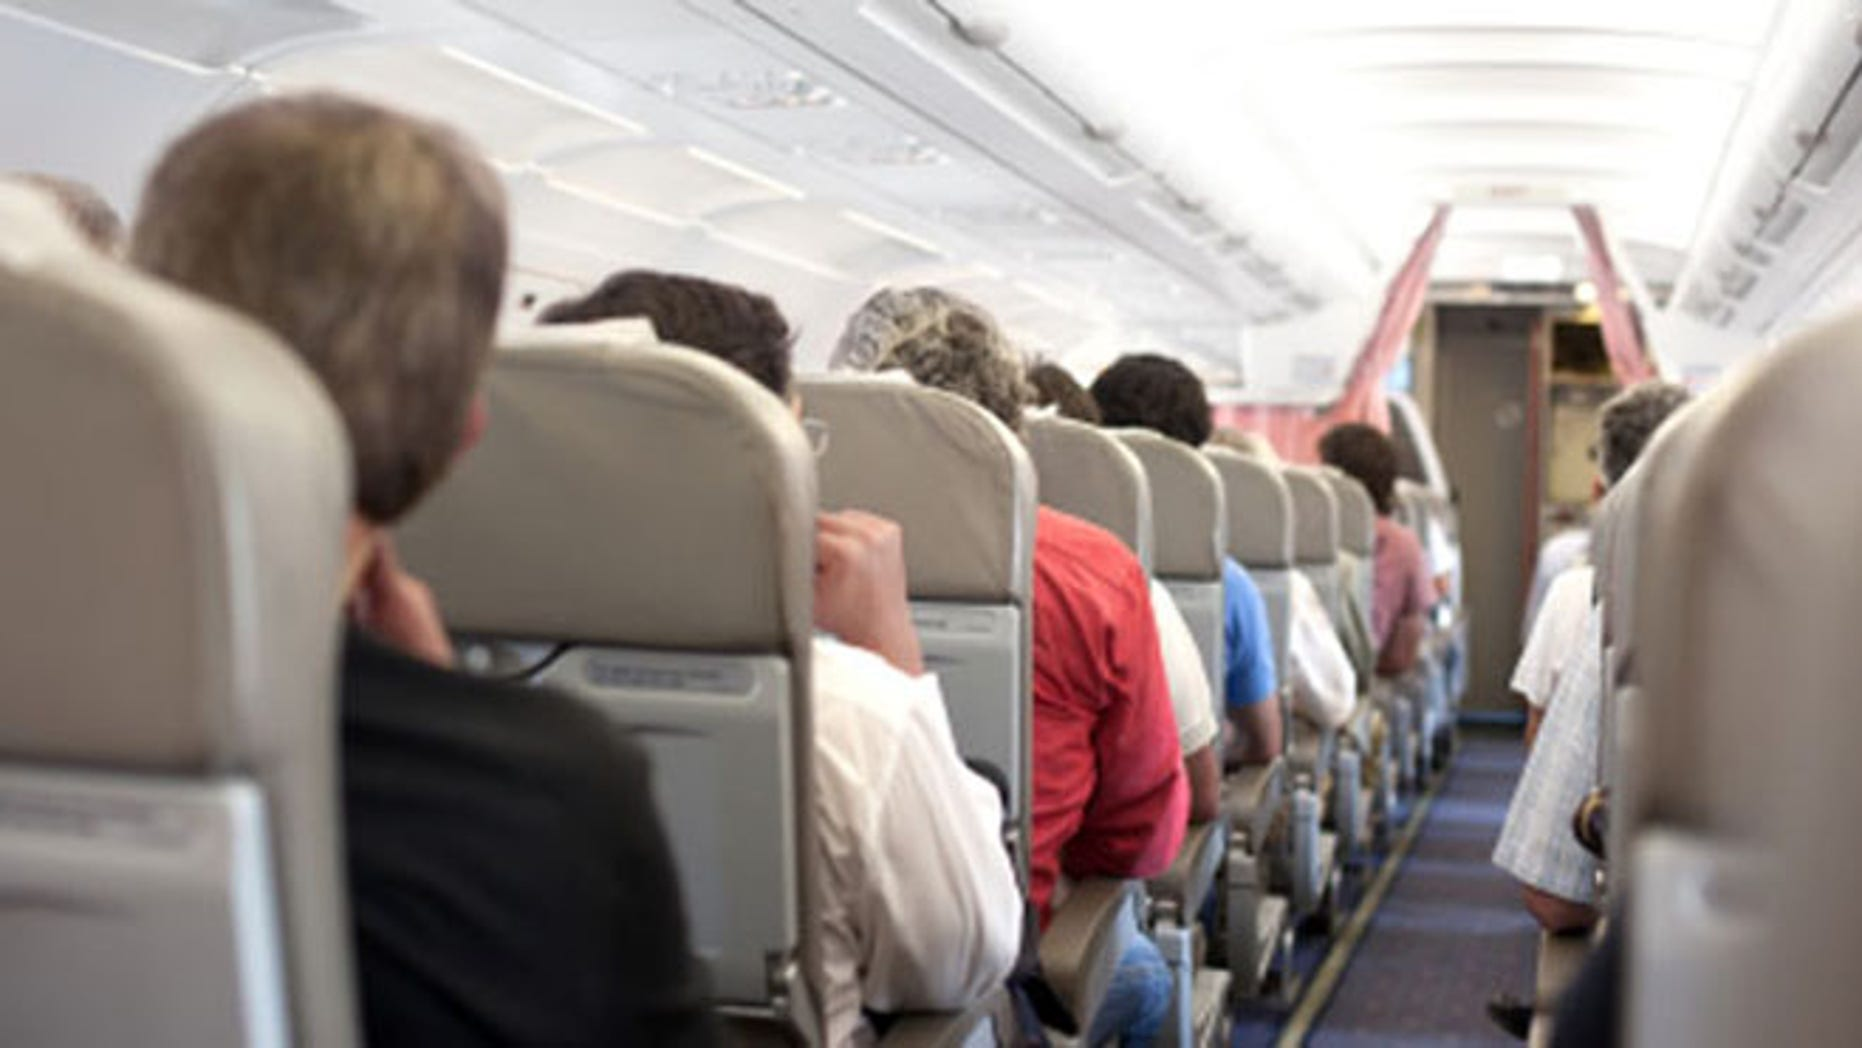 DOT is considering lifting a rule that says airplanes can't remain on the tarmac for a prolonged period before allowing passengers to deplane.